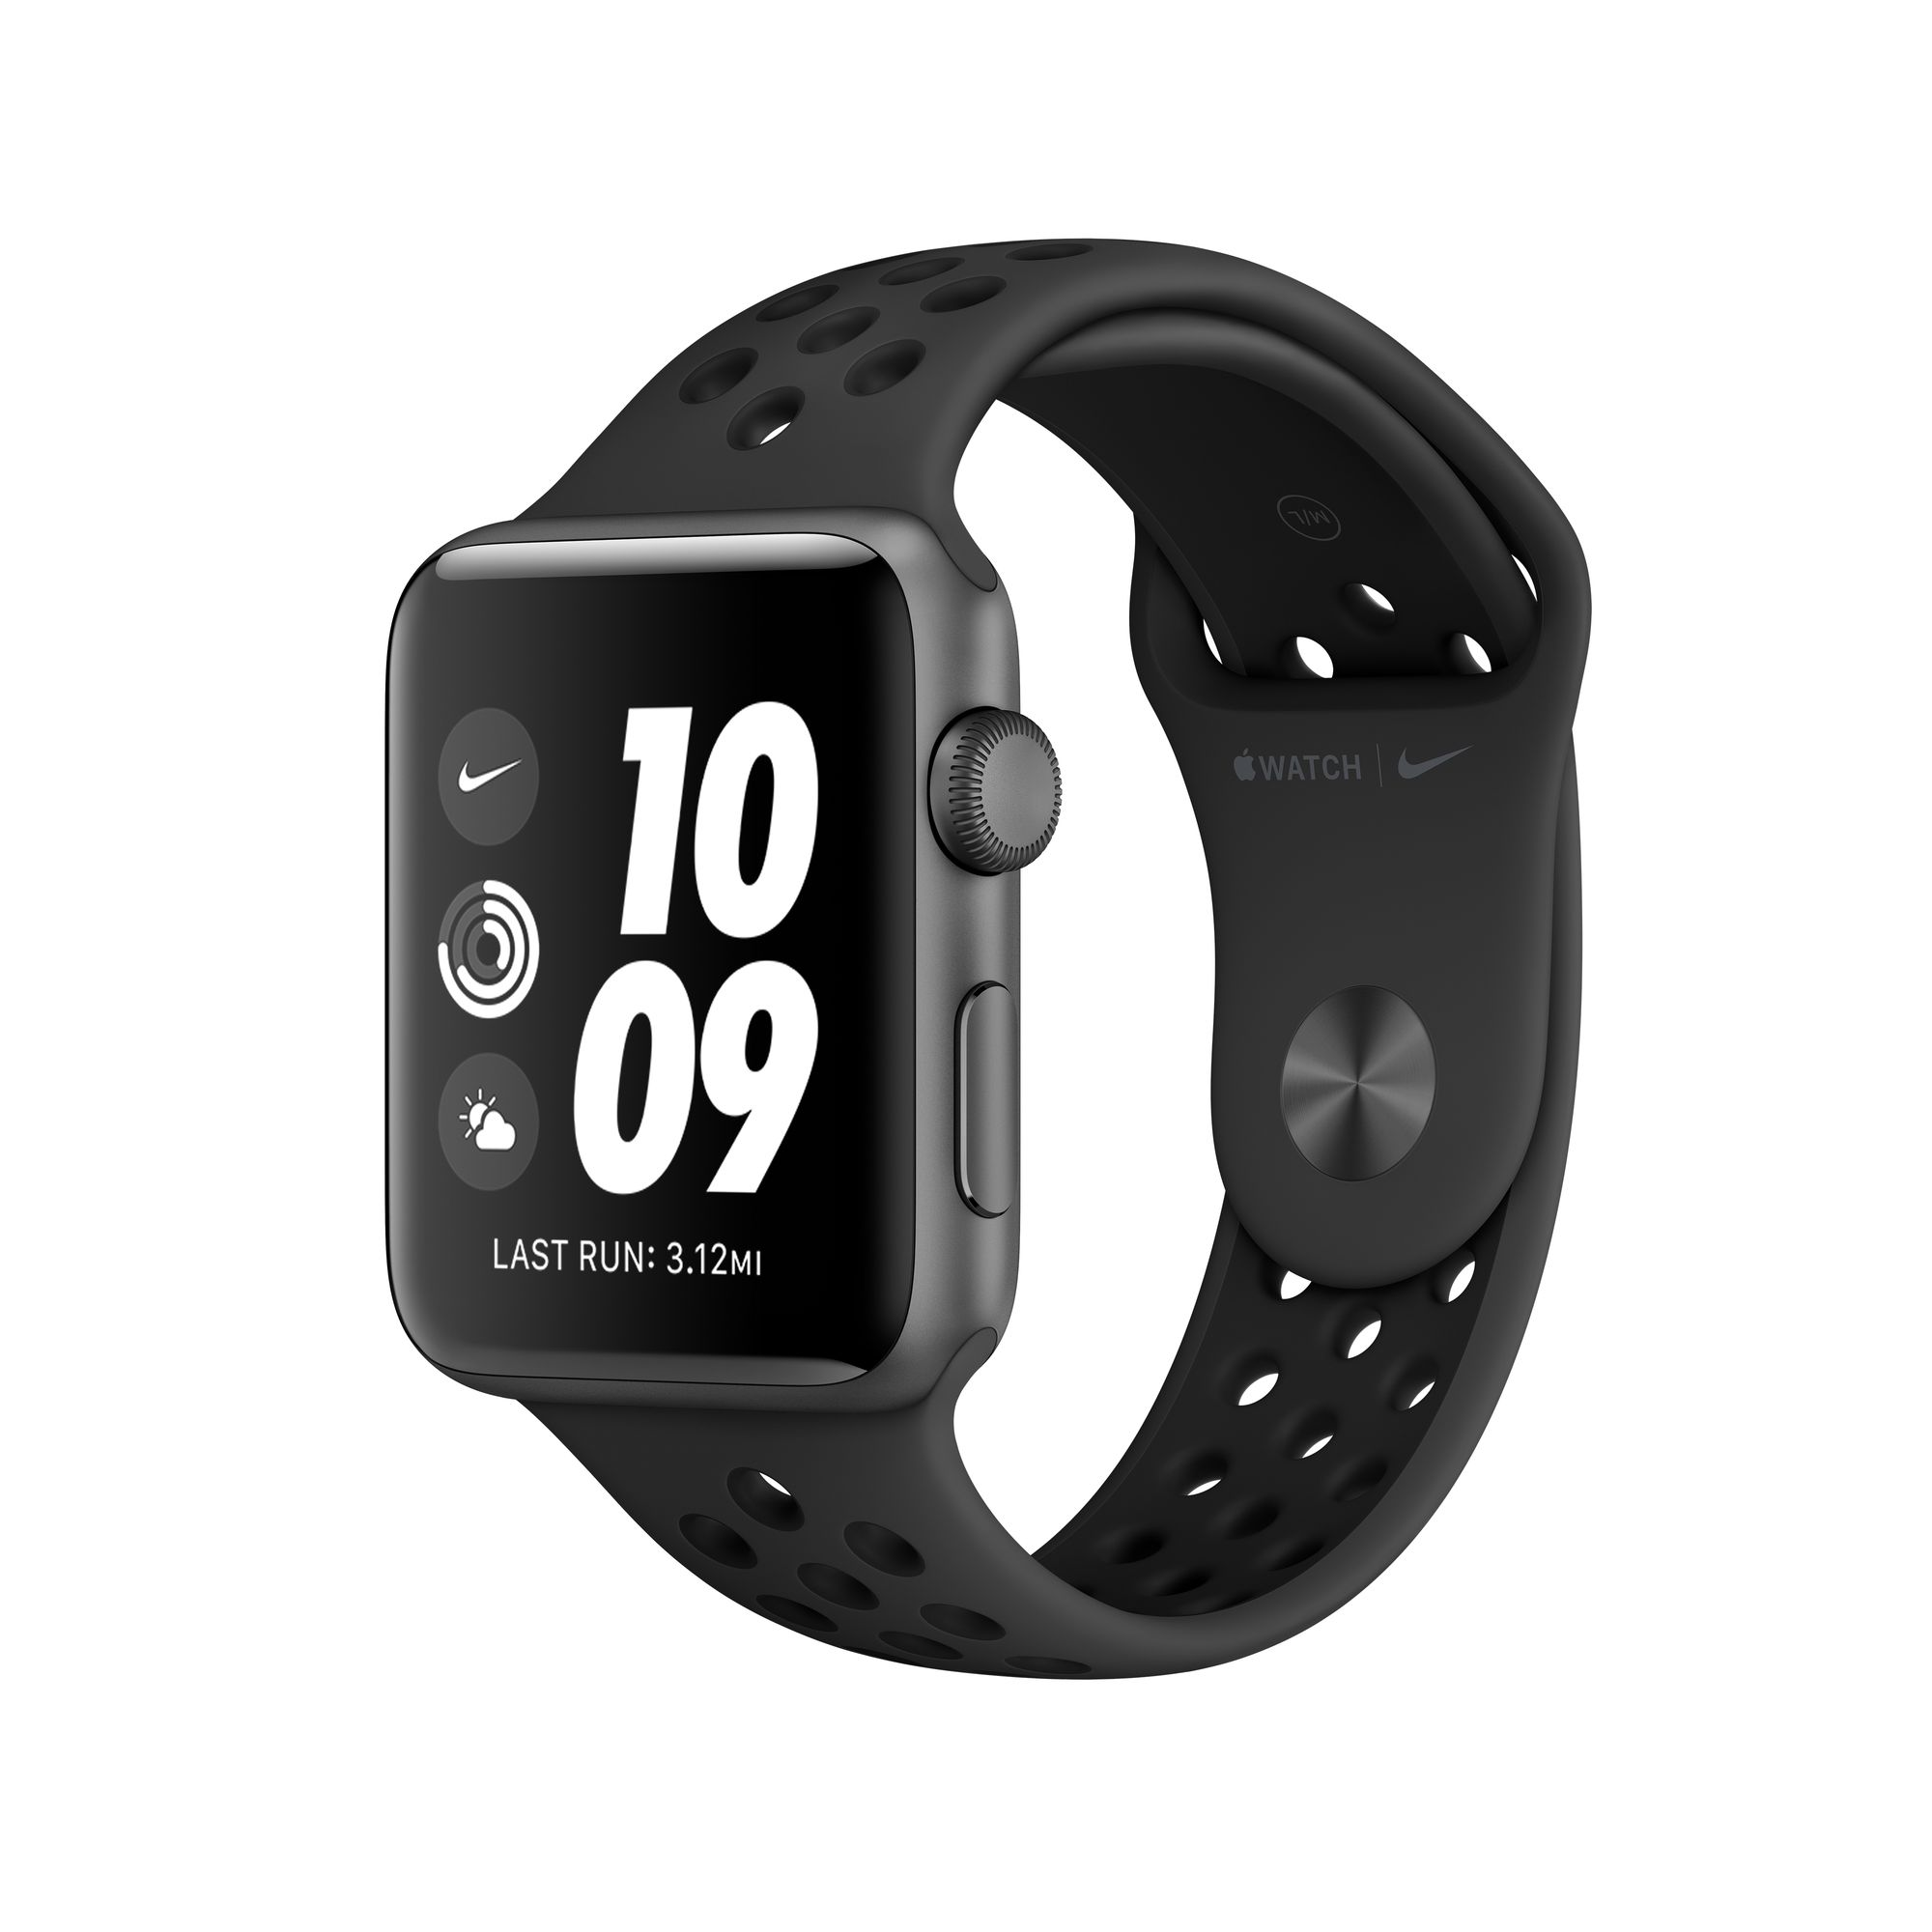 promo code 5e47b b7ec8 Apple Watch Nike+ Series 3 GPS, 38mm Space Gray Aluminum Case with  Anthracite/Black Nike Sport Band